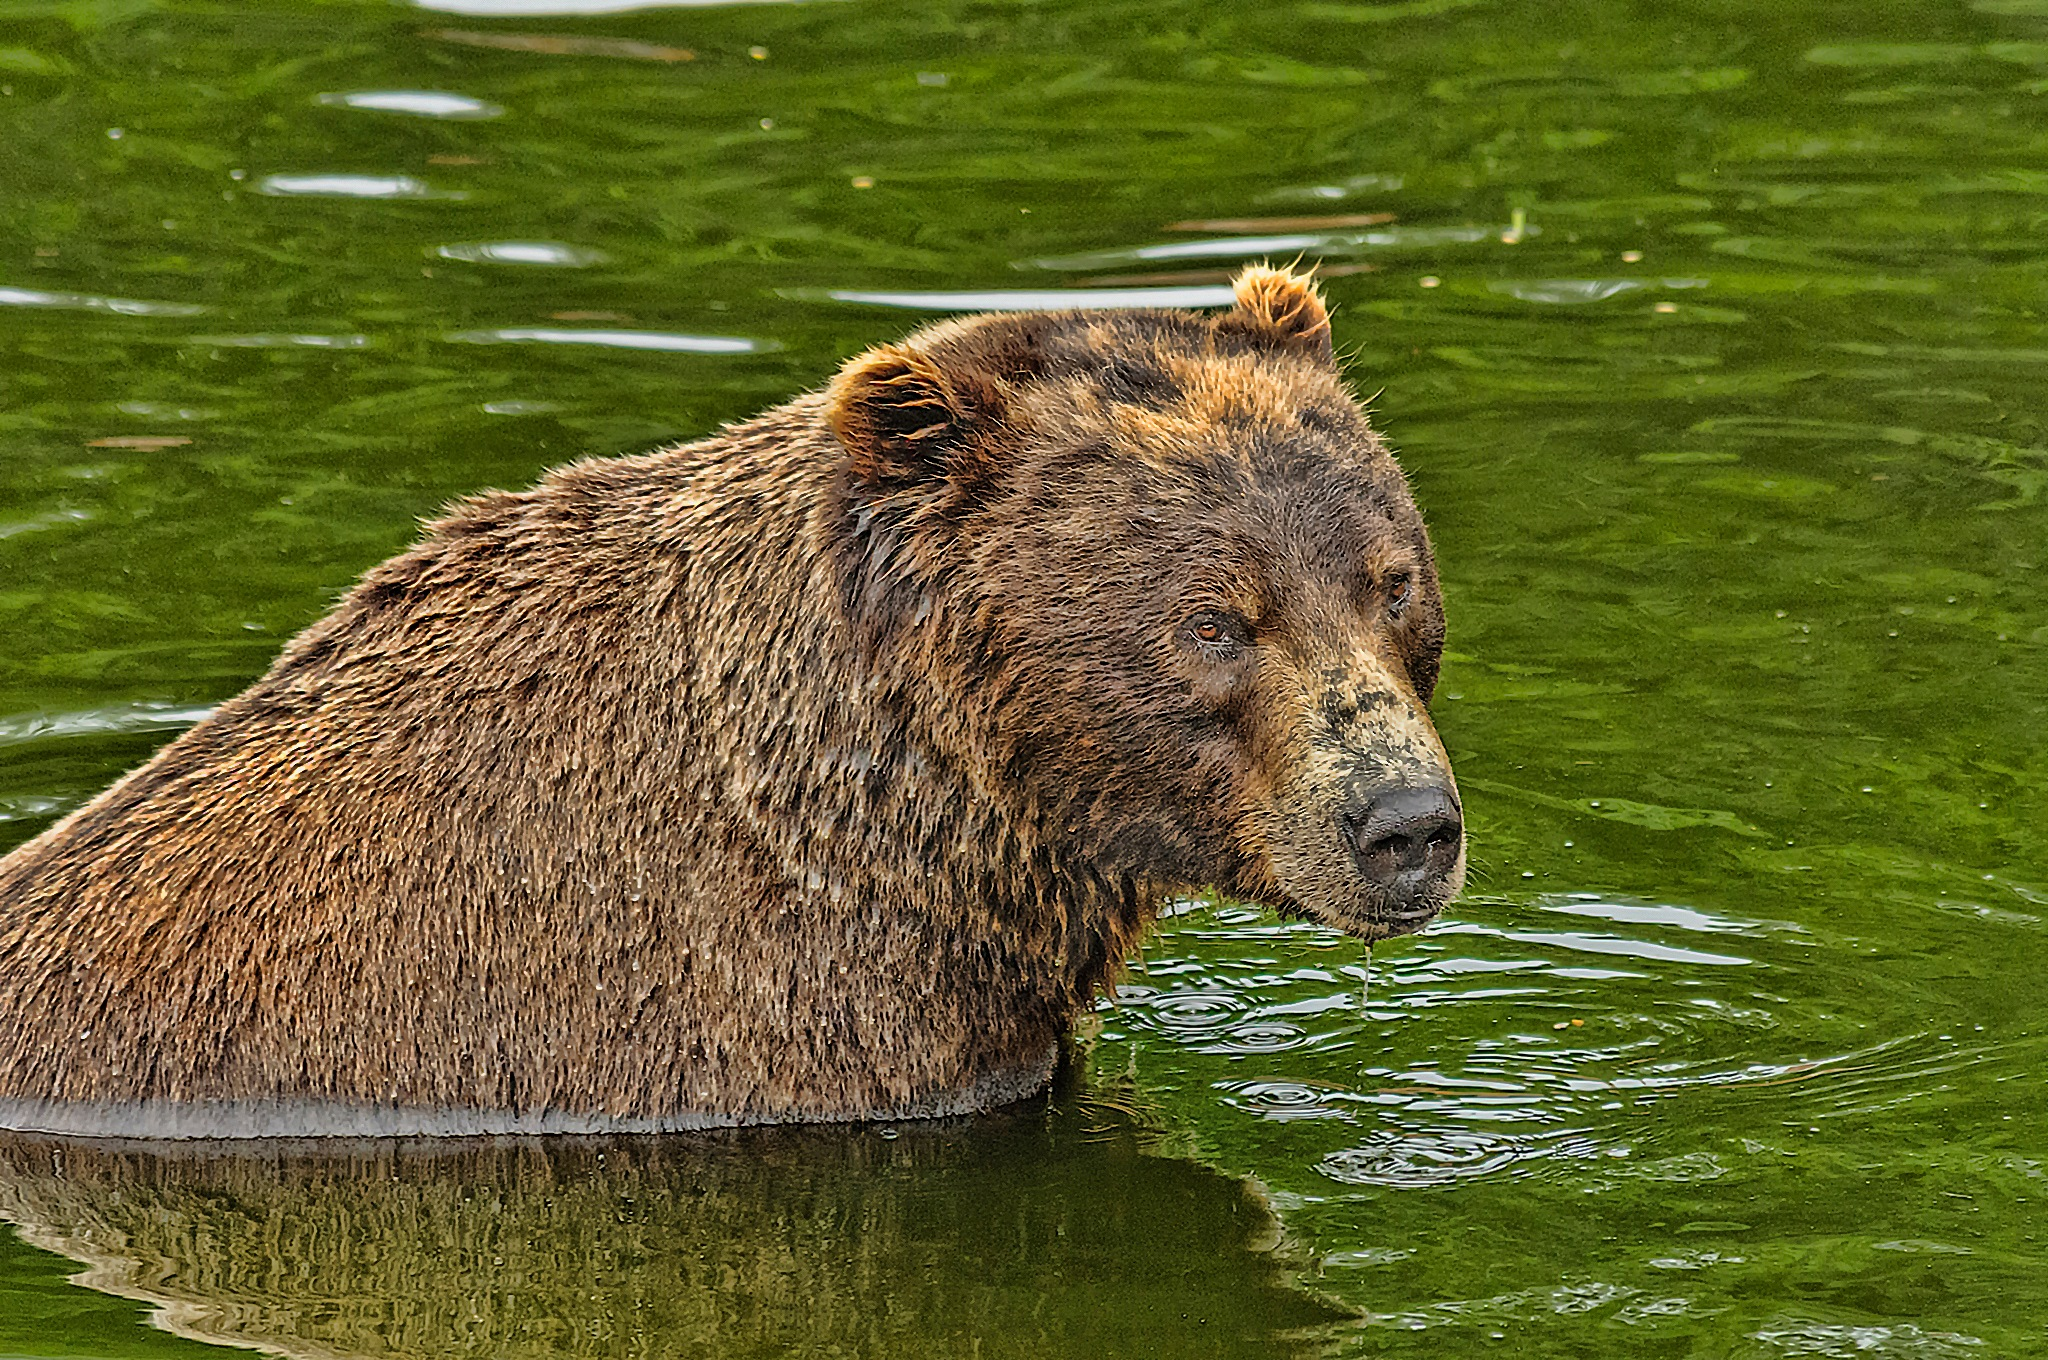 Cooling Off by Herbert Stachelberger